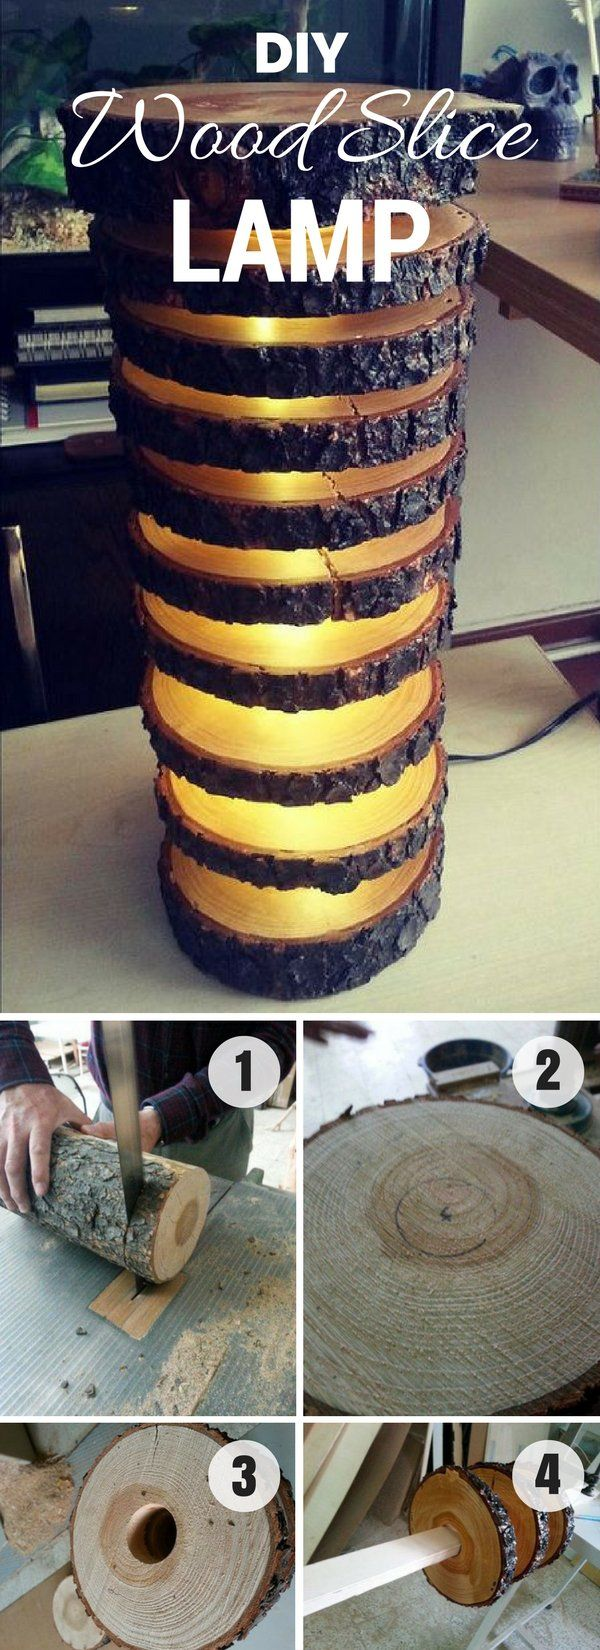 Best 25 rustic wood crafts ideas on pinterest rustic for Wood slice craft projects